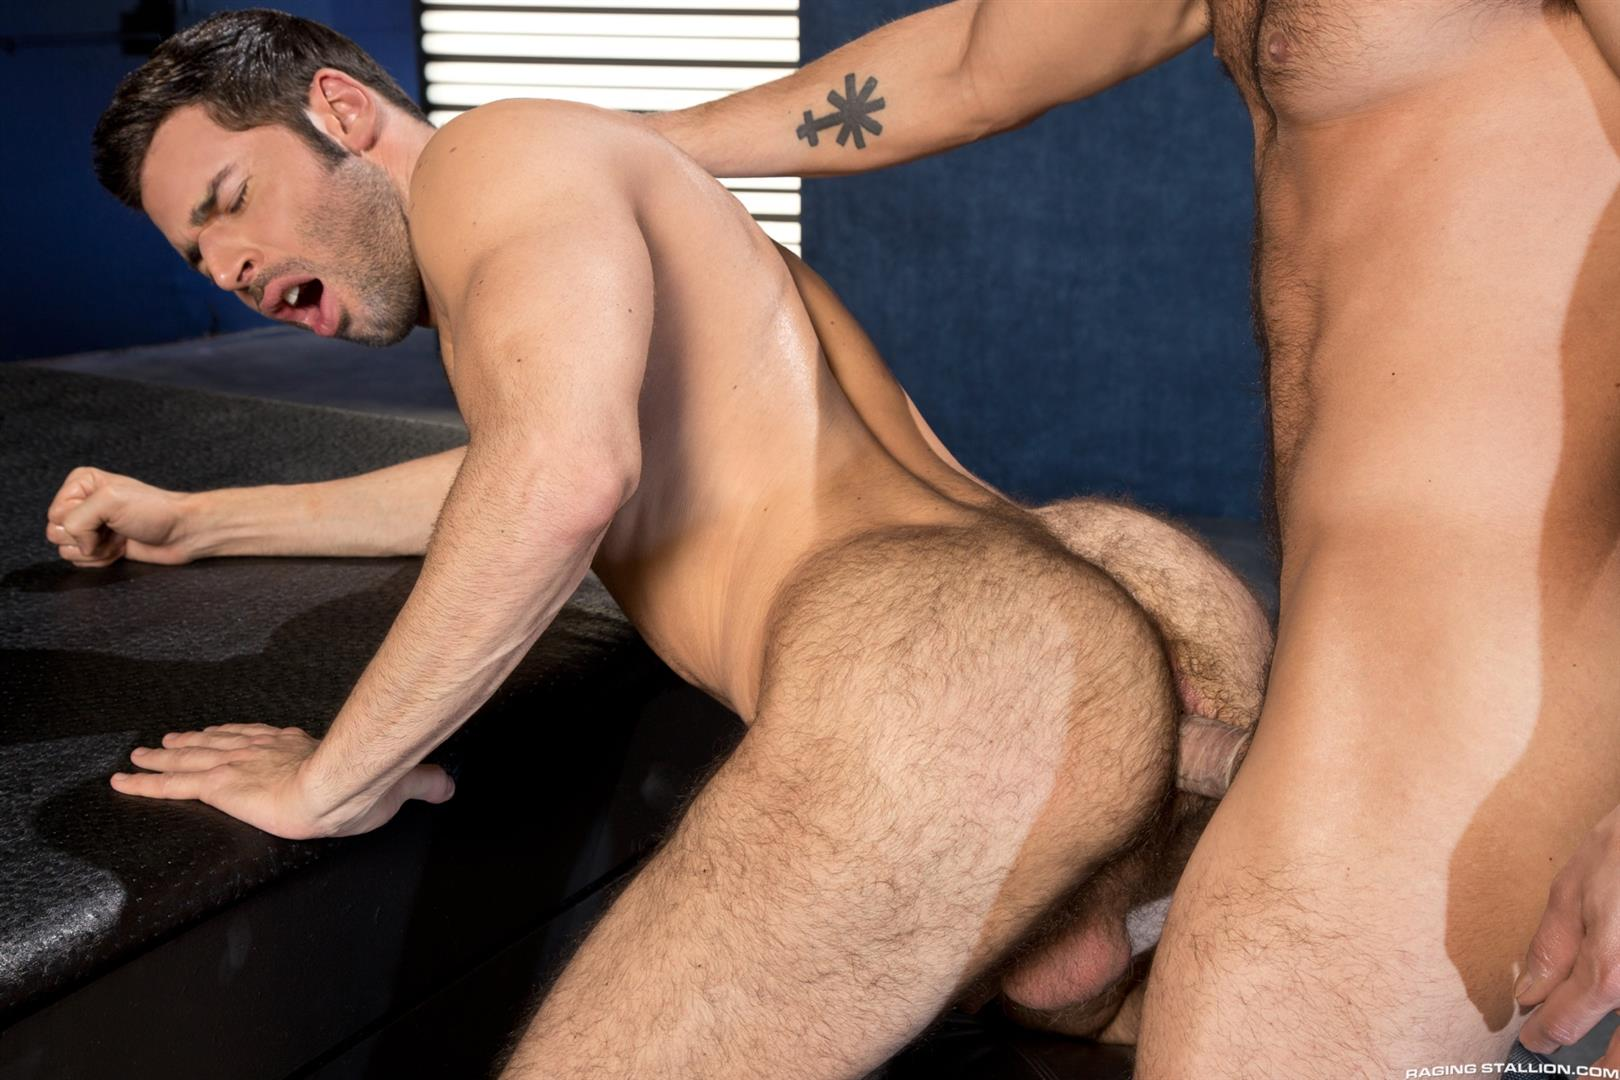 Raging Stallion Adam Ramzi and Dario Beck Hairy Ass And A Big Uncut Cock Amateur Gay Porn 13